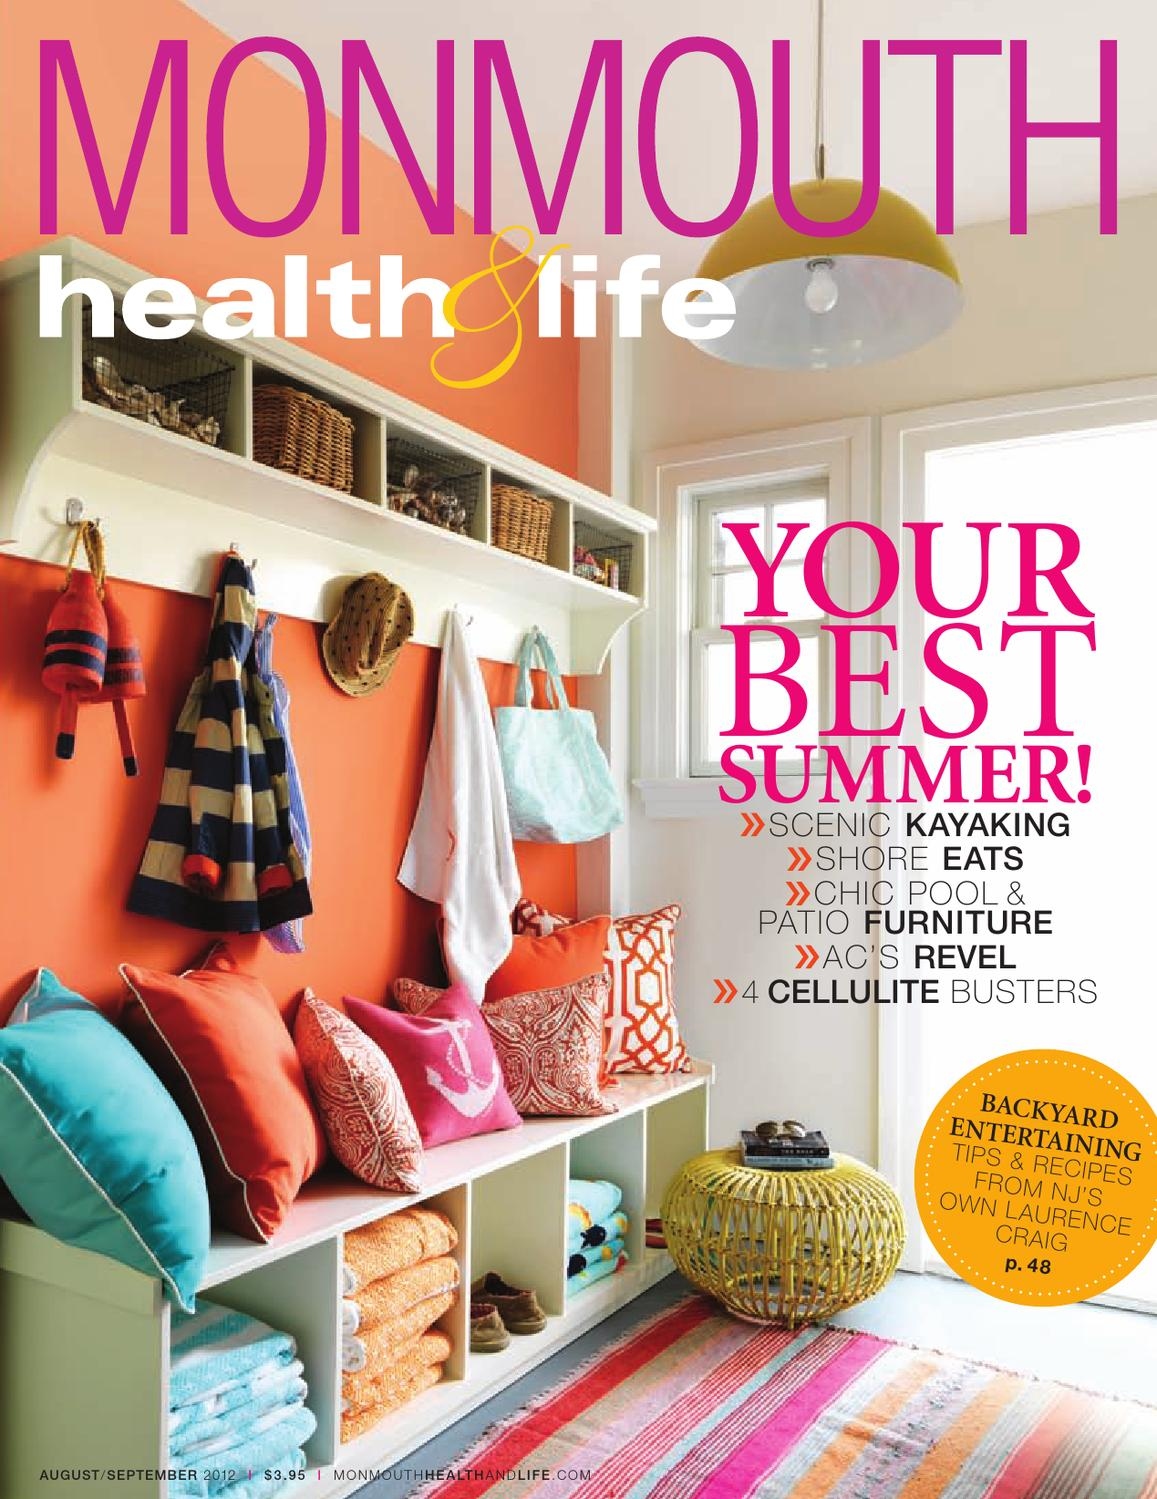 Monmouth Health & Life: August 2012